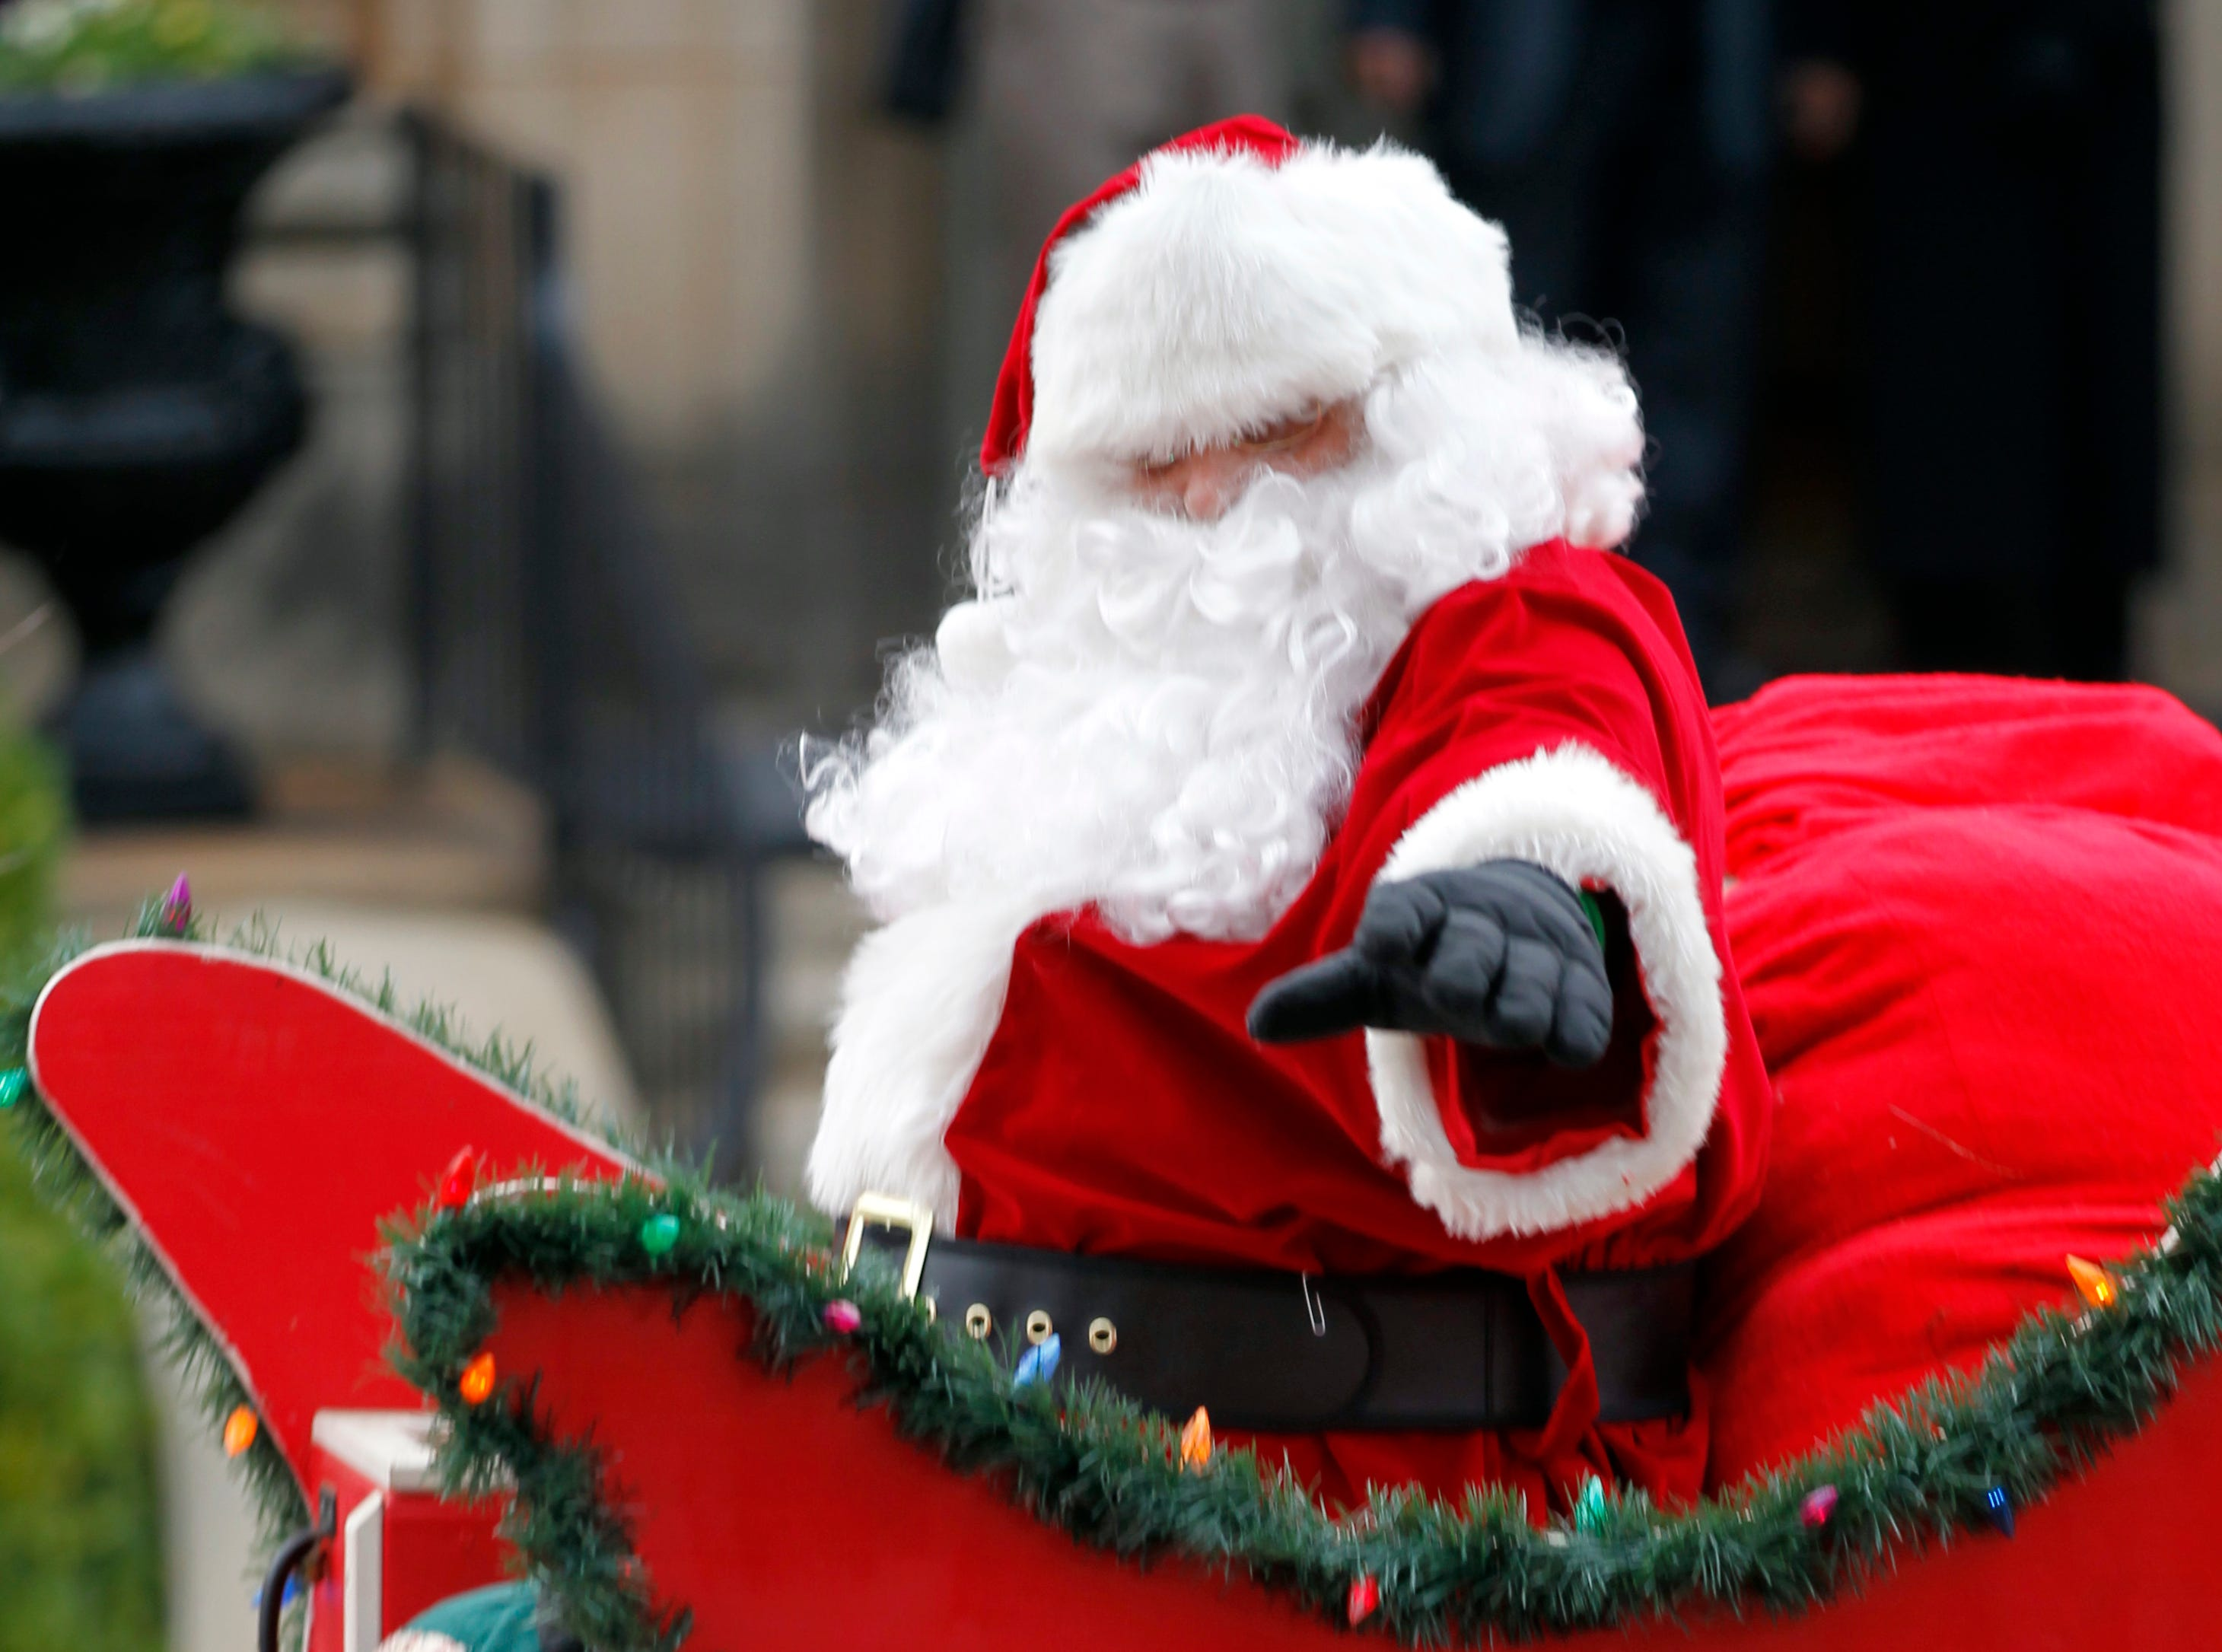 Santa Claus arrives in downtown Anderson at the rear of Sunday's Christmas parade in 2011.